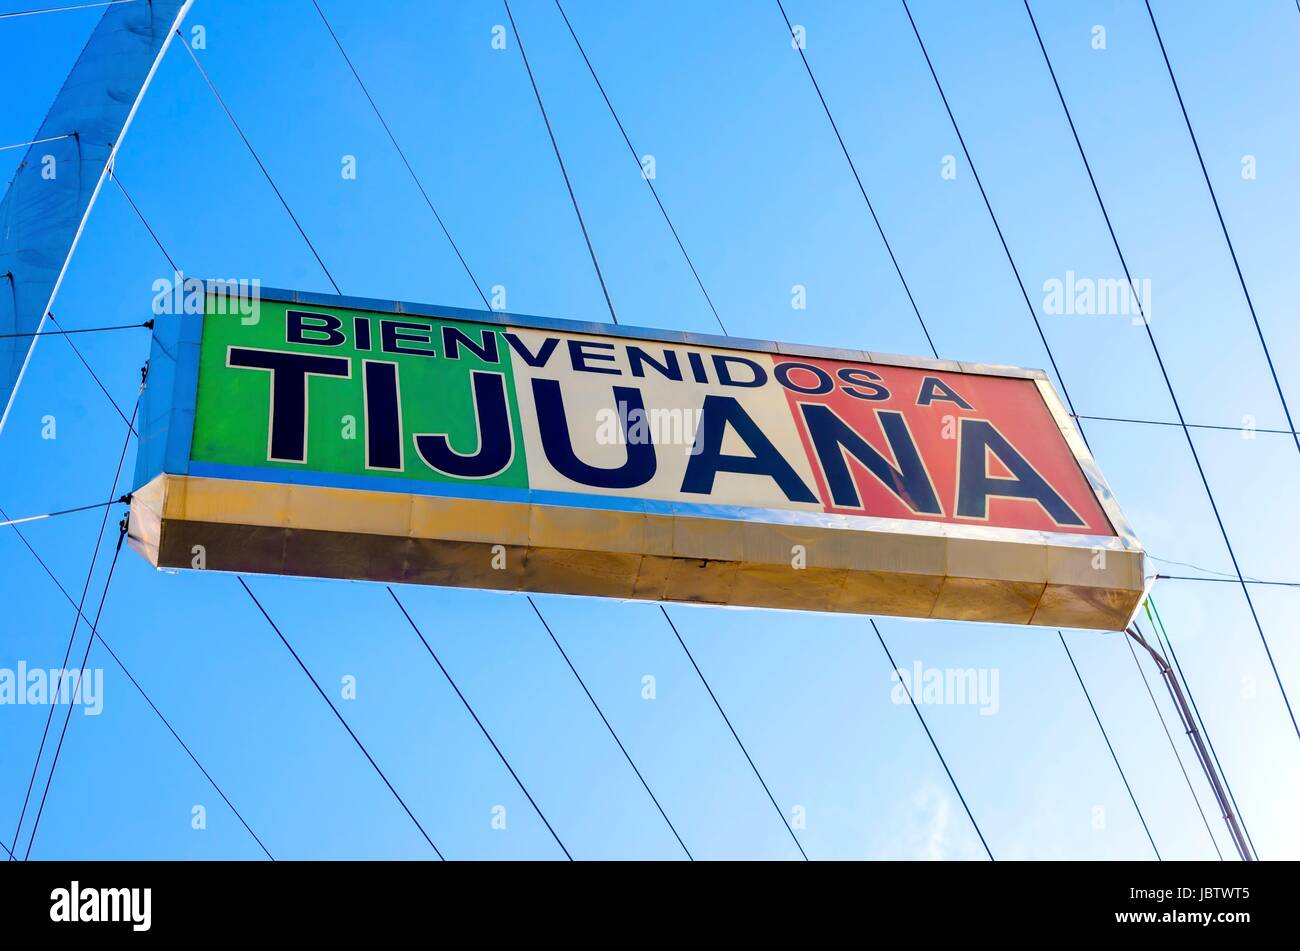 The Bienvenidos a Tijuana sign on the Millennial Arch (Arco y Reloj Monumental), a metallic steel arch at the entrance - Stock Image